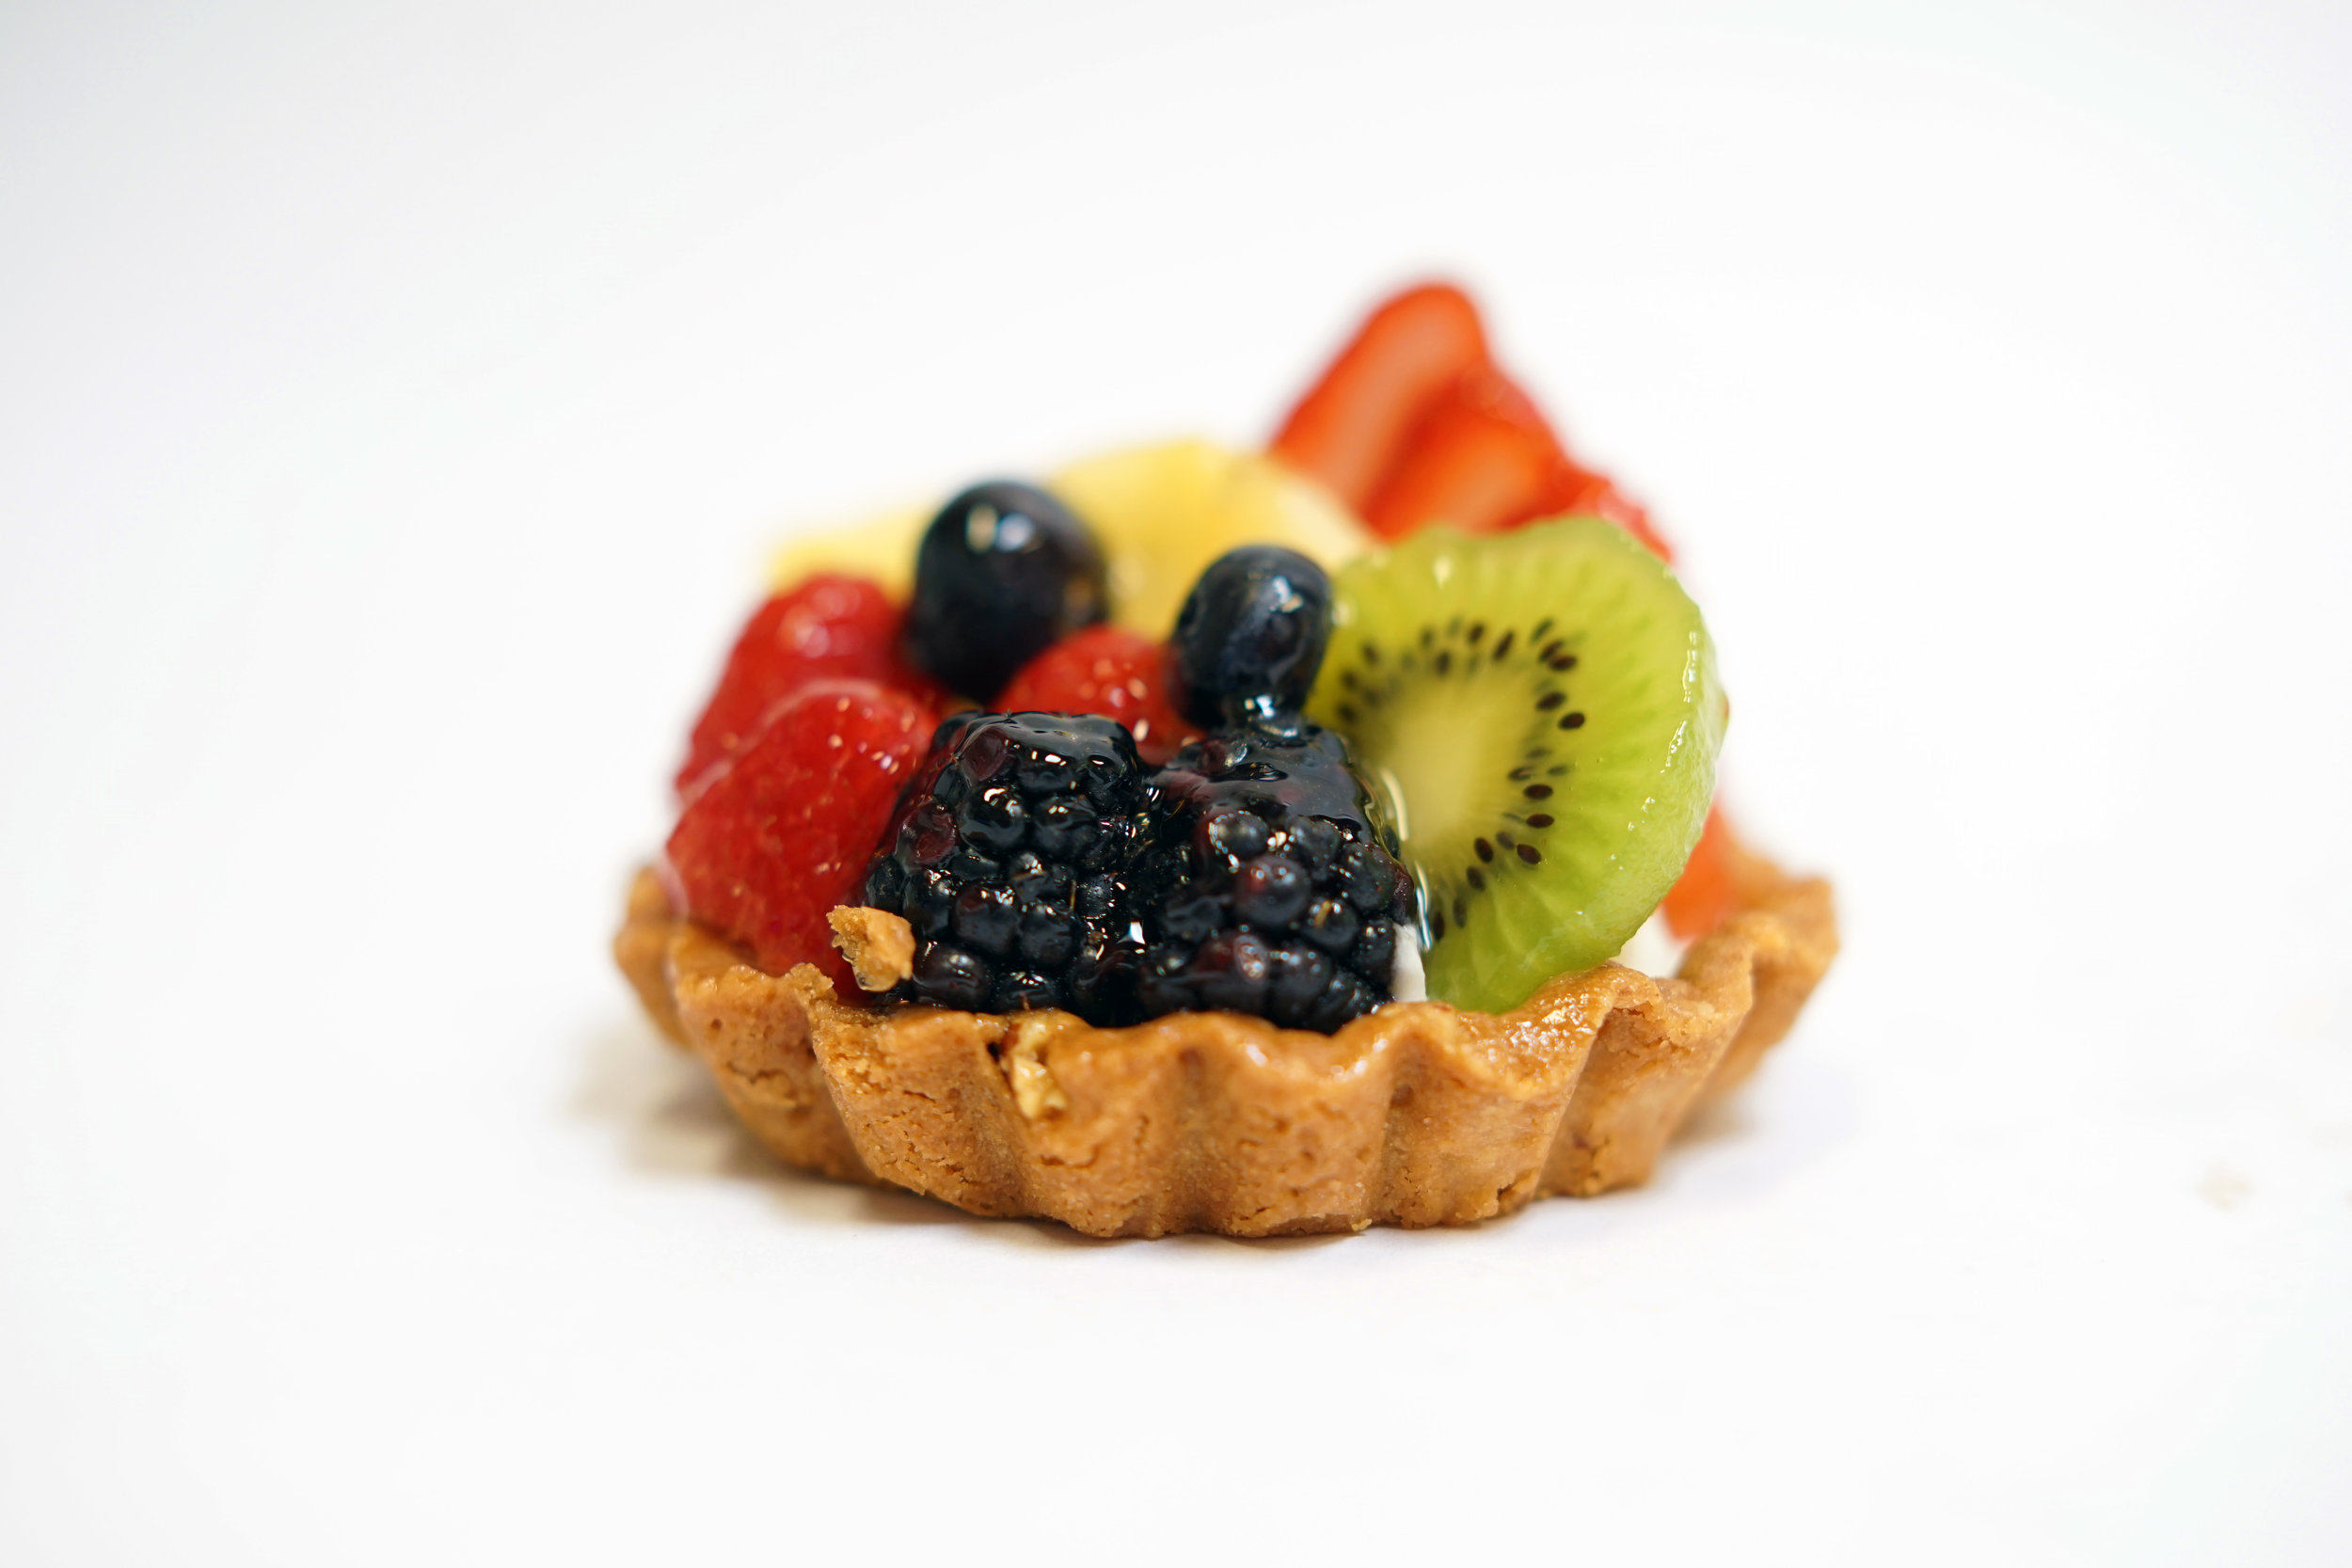 Tarts - Mix fruit, Berries, Lemon, Cherry, Blueberry, Chocolate, or Strawberry